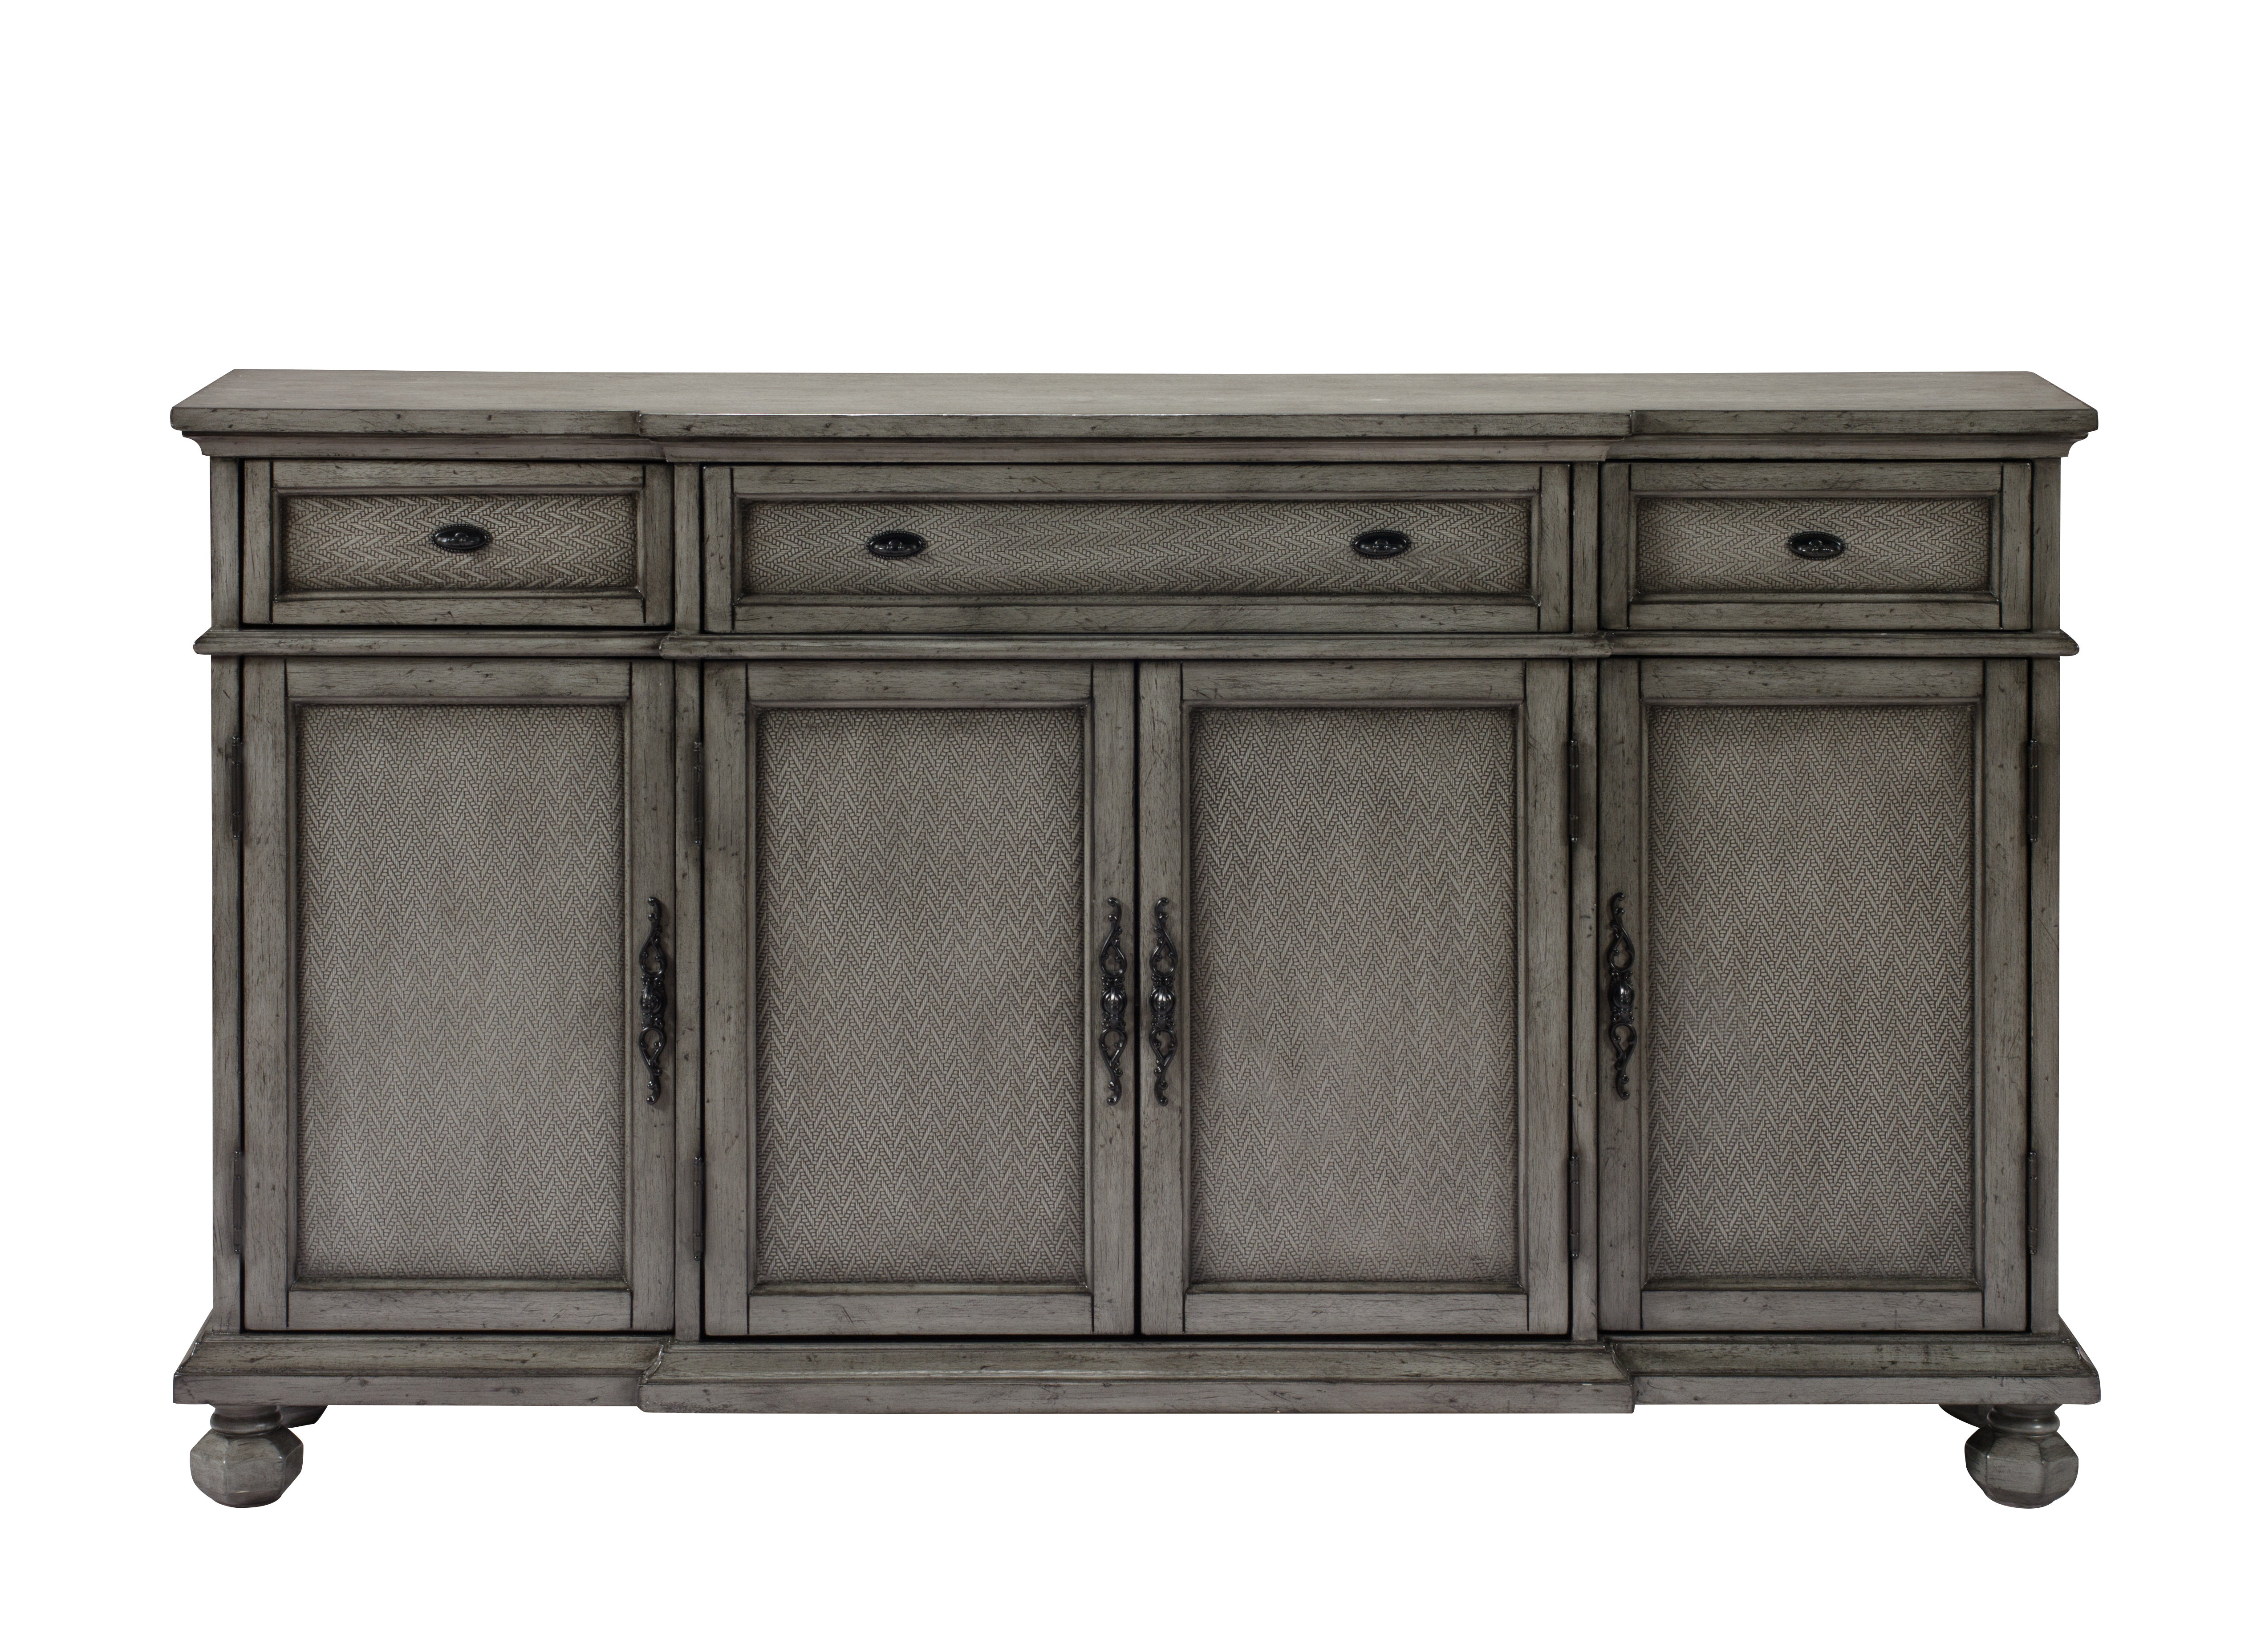 Deville Russelle Sideboards Throughout Most Popular Giulia 3 Drawer Credenza (Gallery 5 of 20)